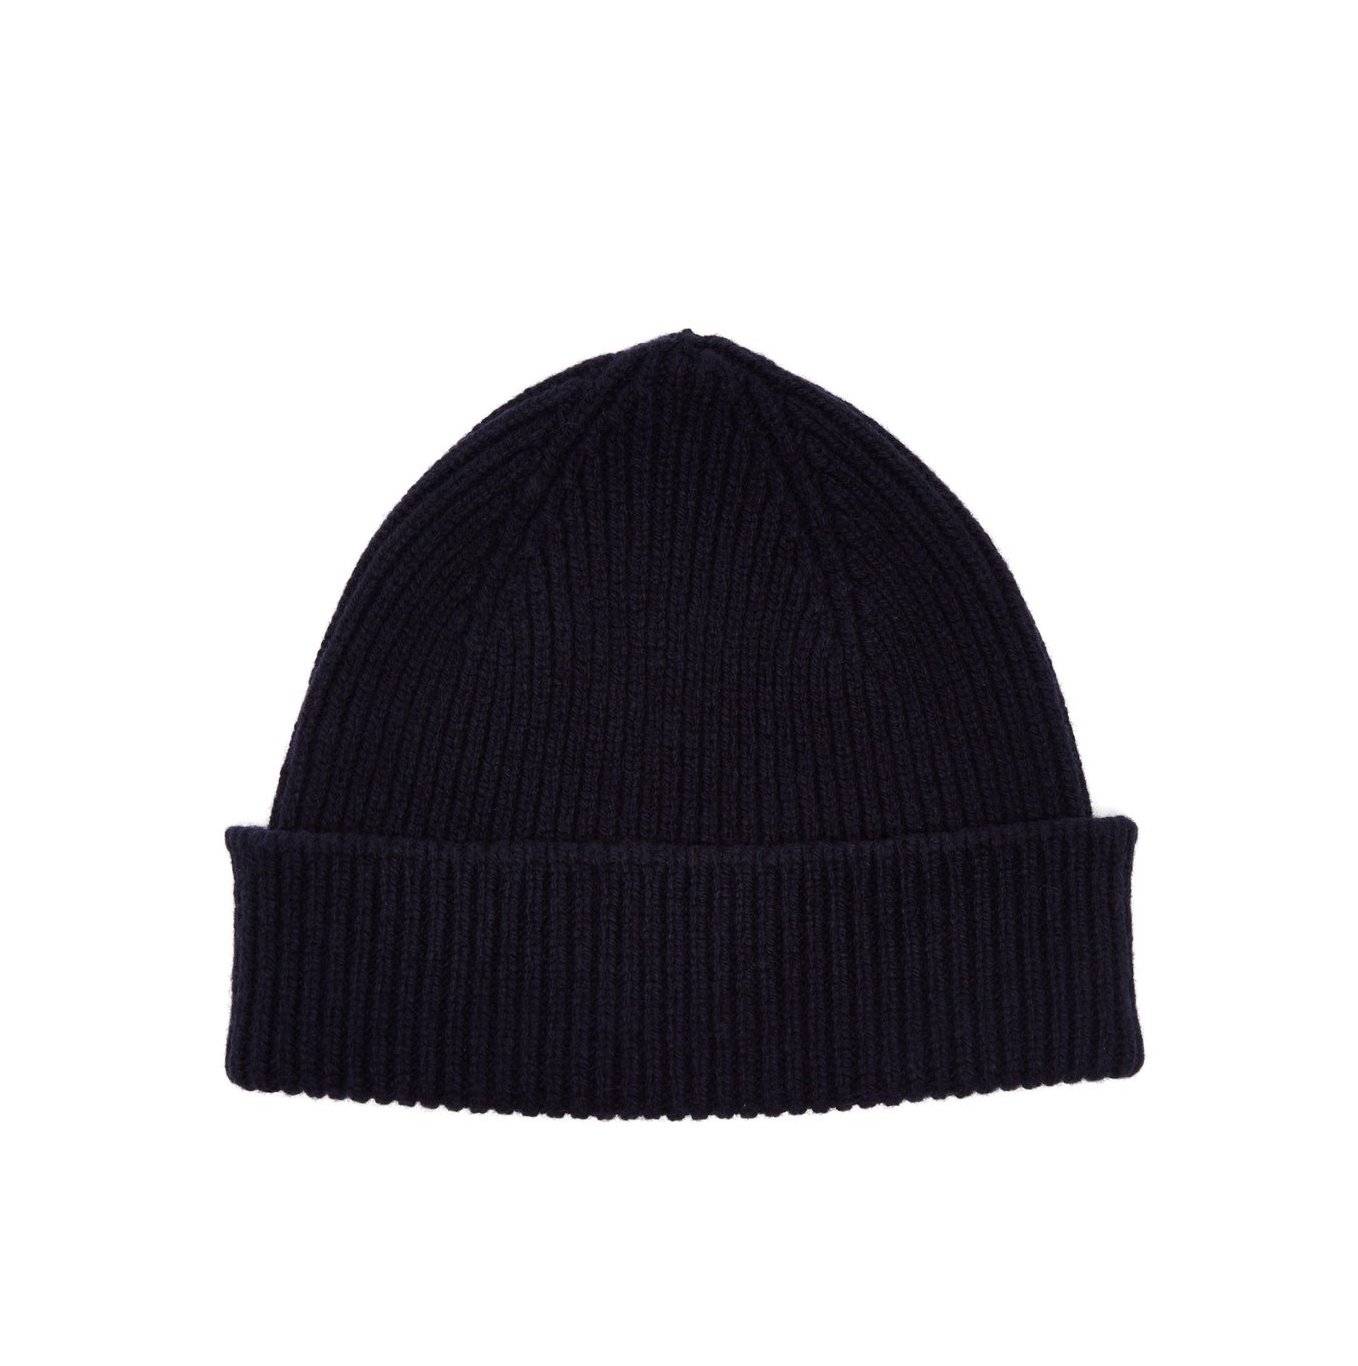 Cashmere and merino wool blend beanie - PAUL SMITH Classic and luxurious fabrics are combined for this dark navy beanie hat by Paul Smith. It's made in Scotland from a mid-weight cashmere and merino wool blend and the ribbed composition has a note of stretch for the perfect fit. Buy it here